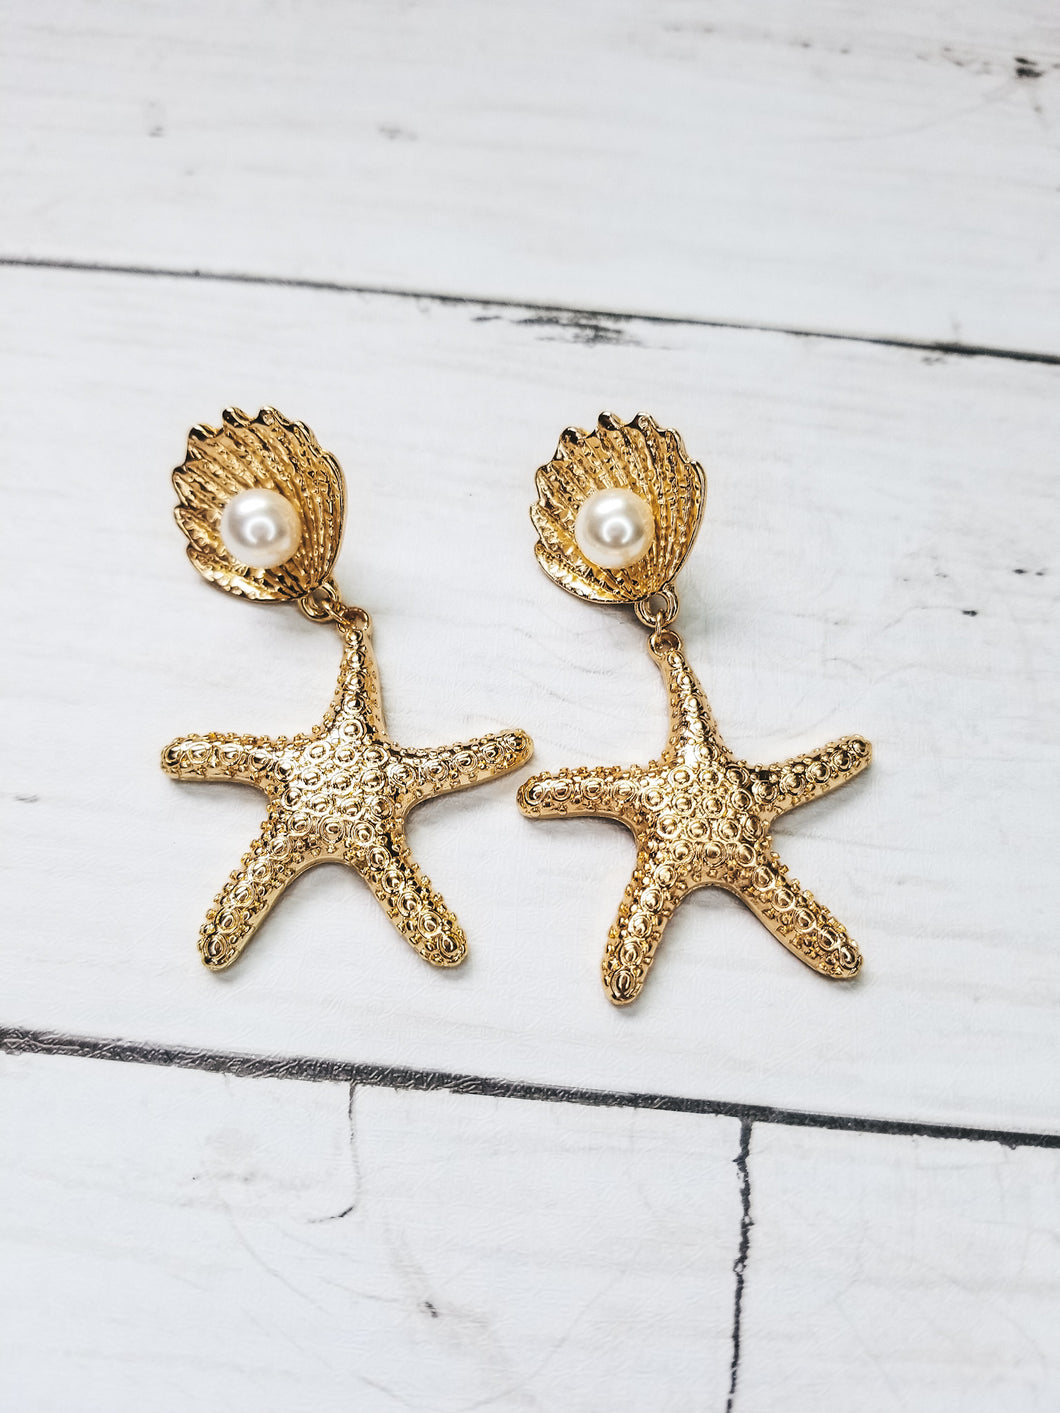 Linda Starfish and Pearl Drop Earrings - West Canada Co